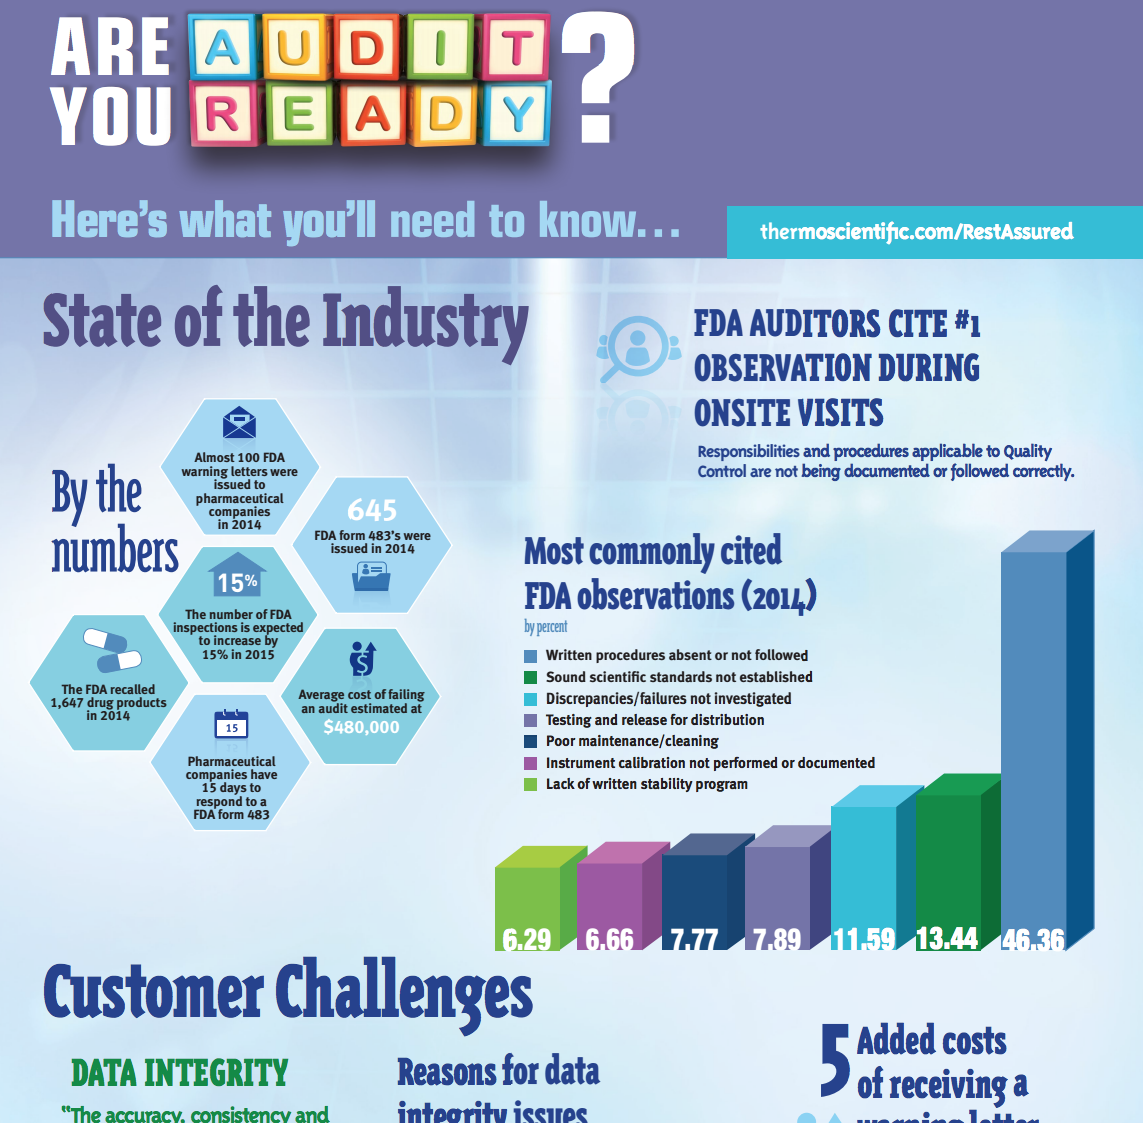 Full infographic here httpchromccqaxra get audit ready by full infographic here httpchromccqaxra get audit ready fandeluxe Image collections